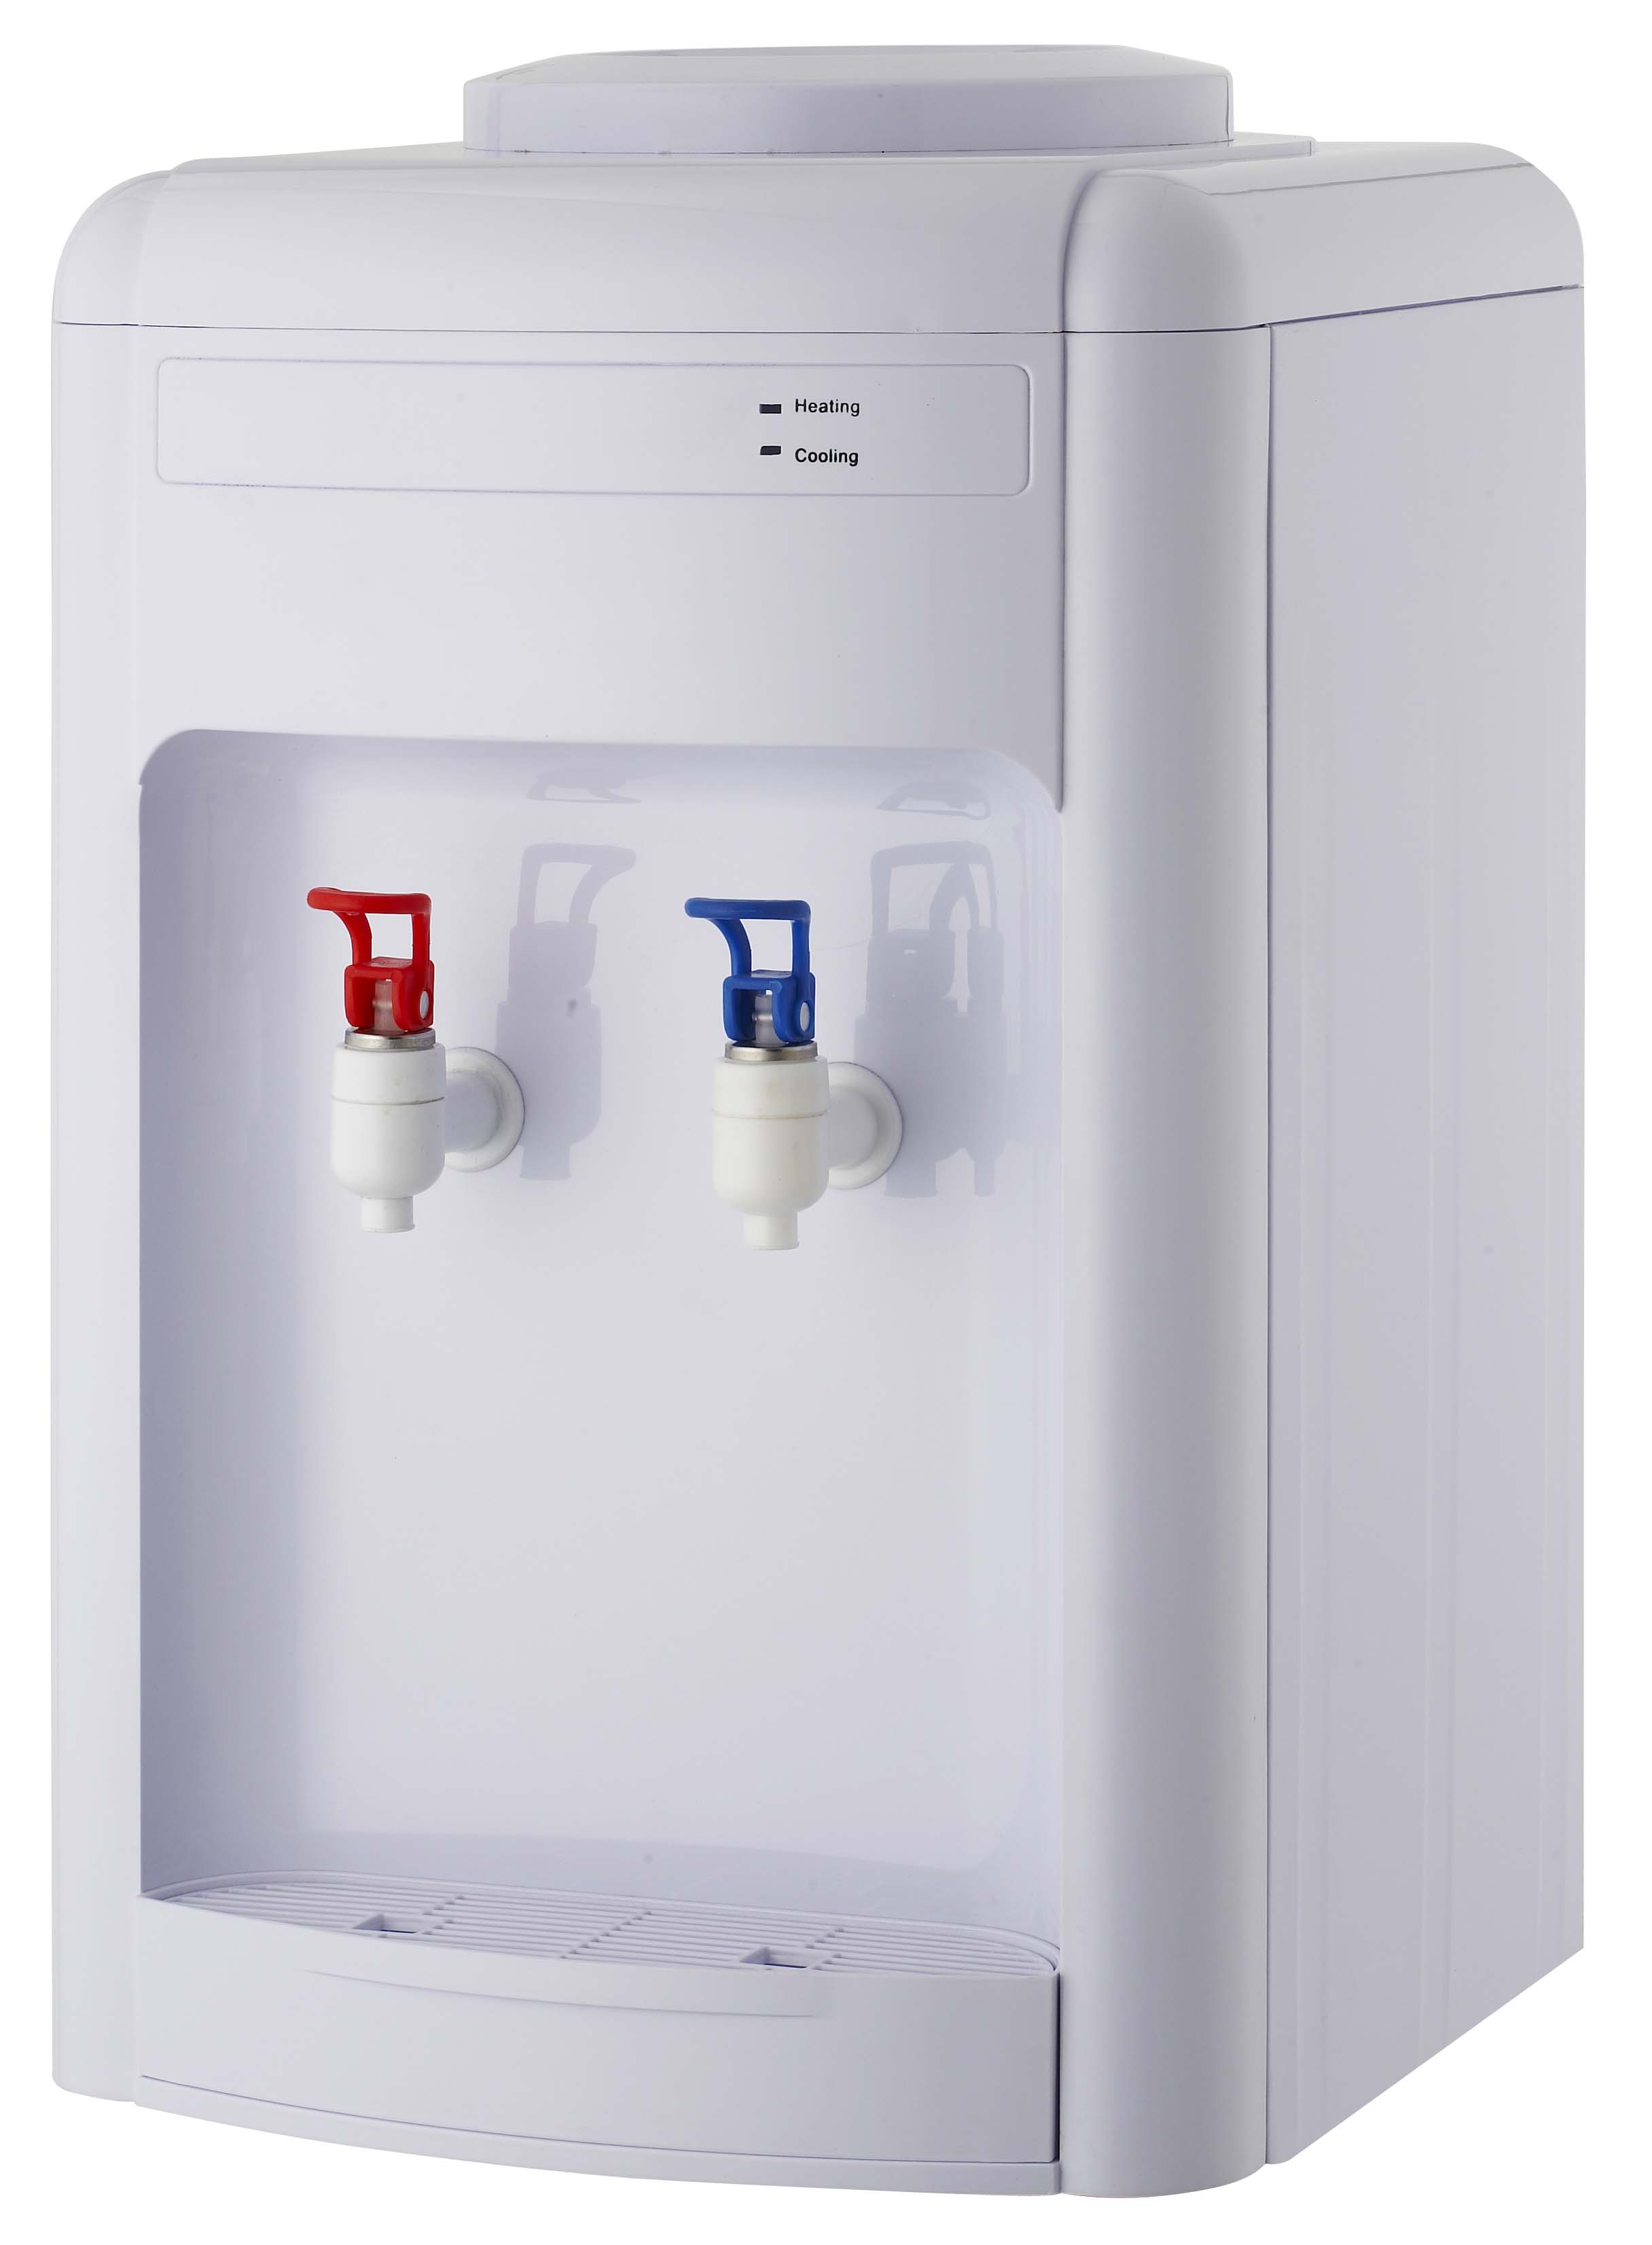 Water Dispenser - Buy Water Dispensers Online in India at Best Prices